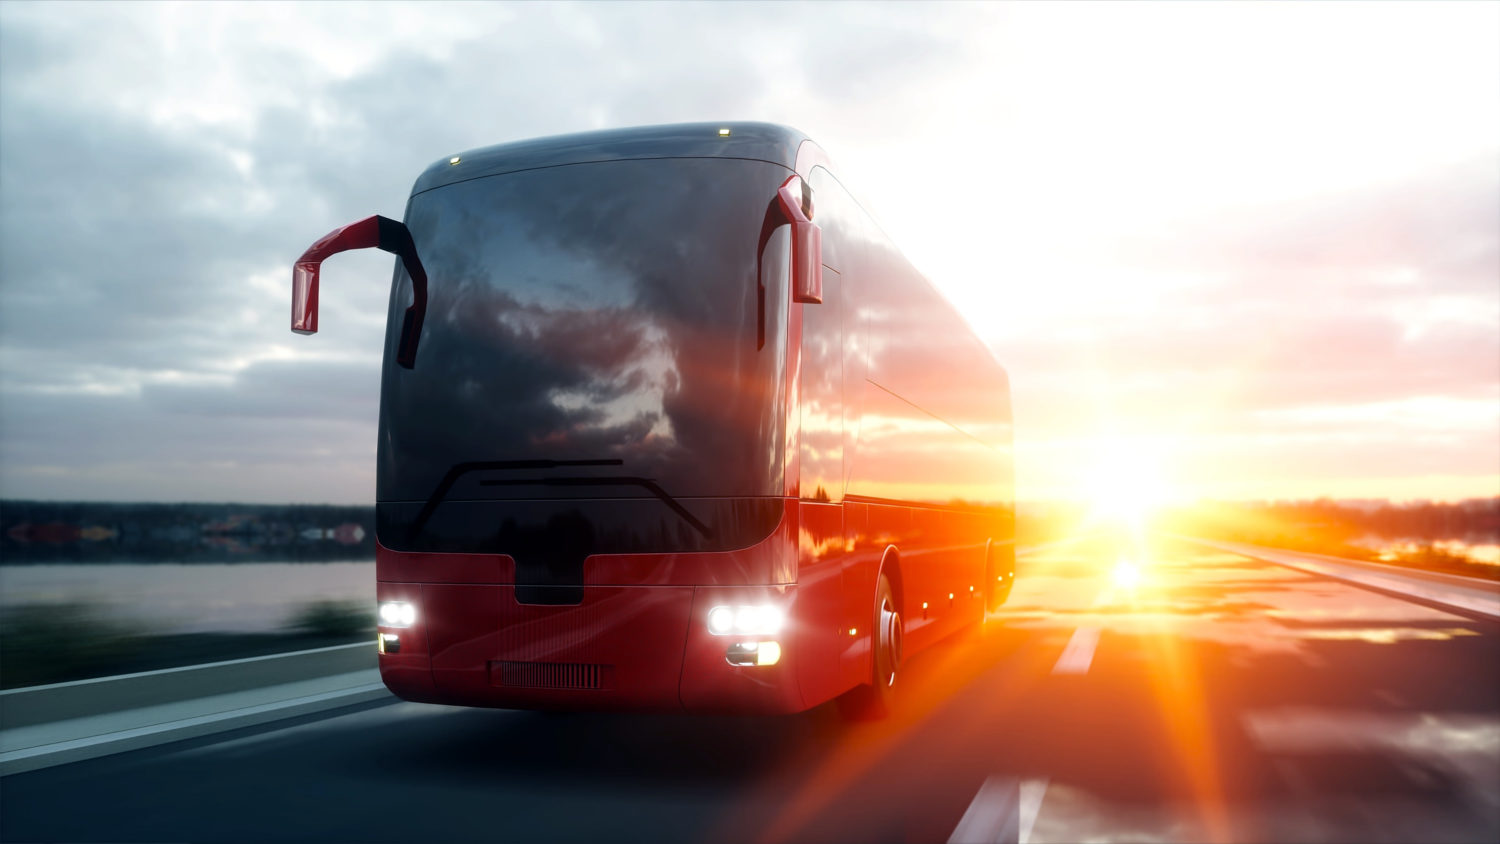 Red bus driving on a road with sunset behind it from Tallinn to Riga